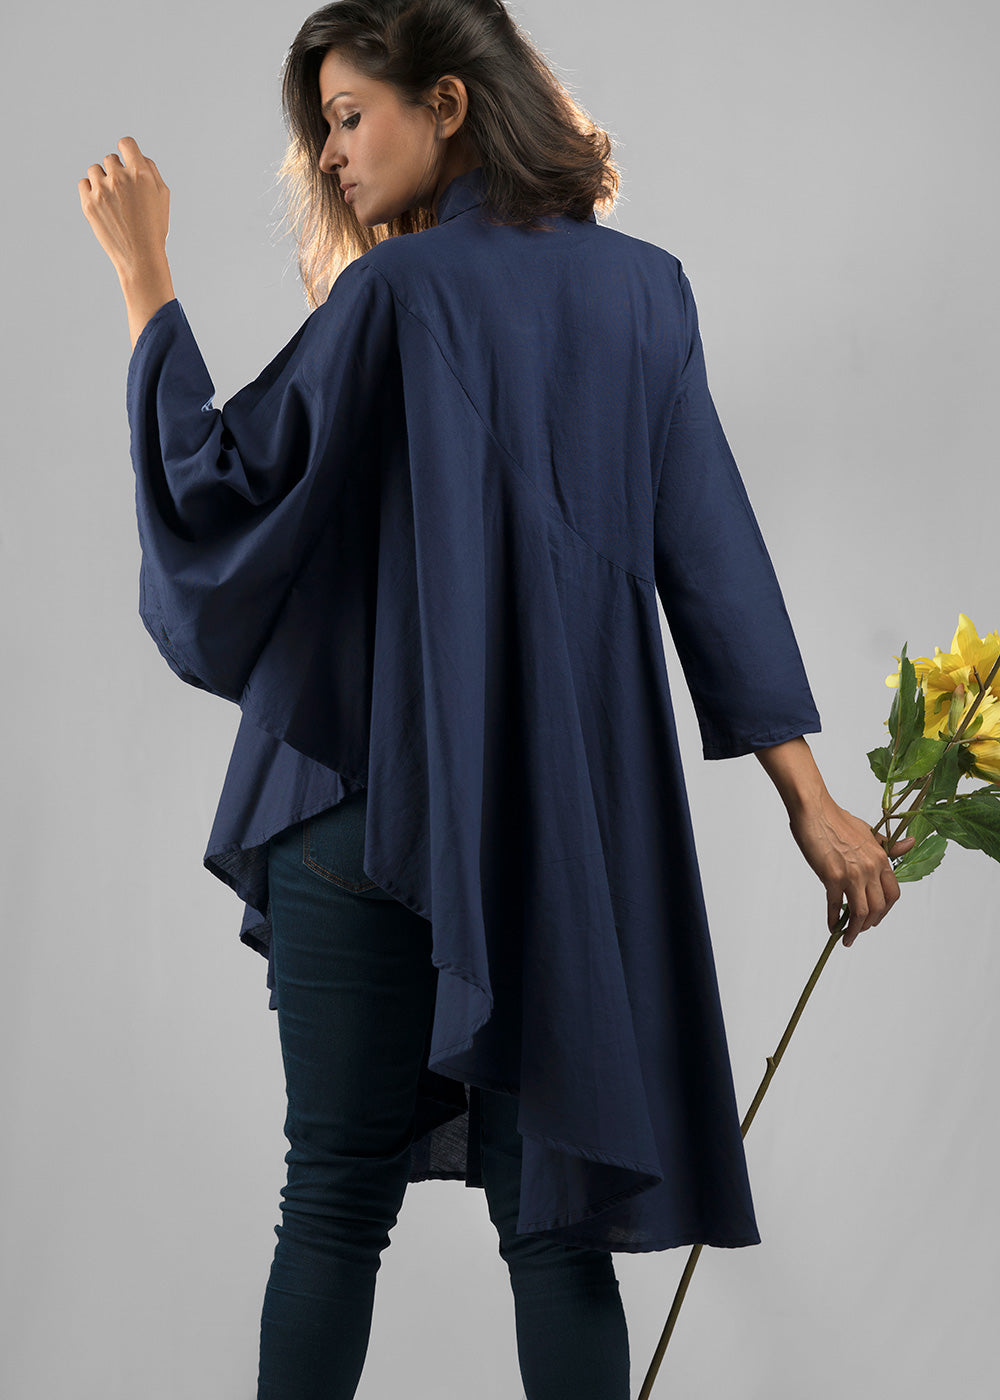 Holly top in midnight blue